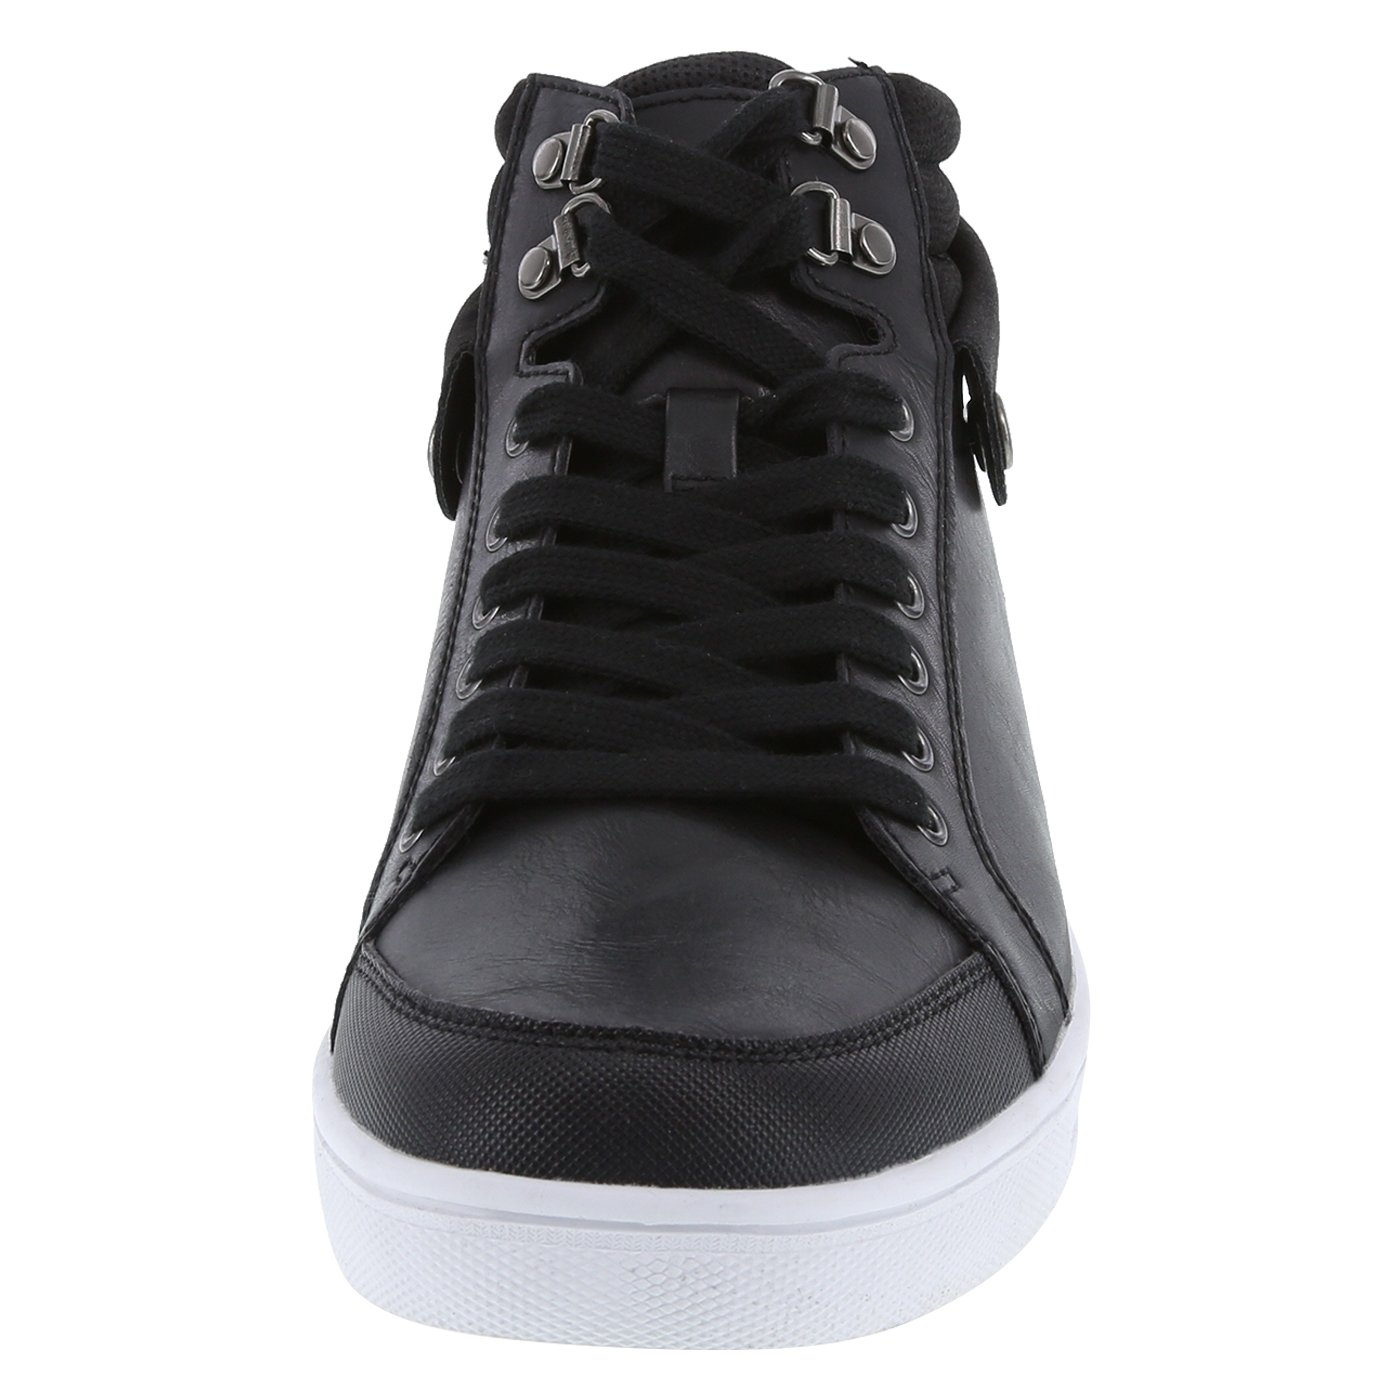 Airwalk Men's Black Men's Ian High-Top 11 Regular by Airwalk (Image #4)